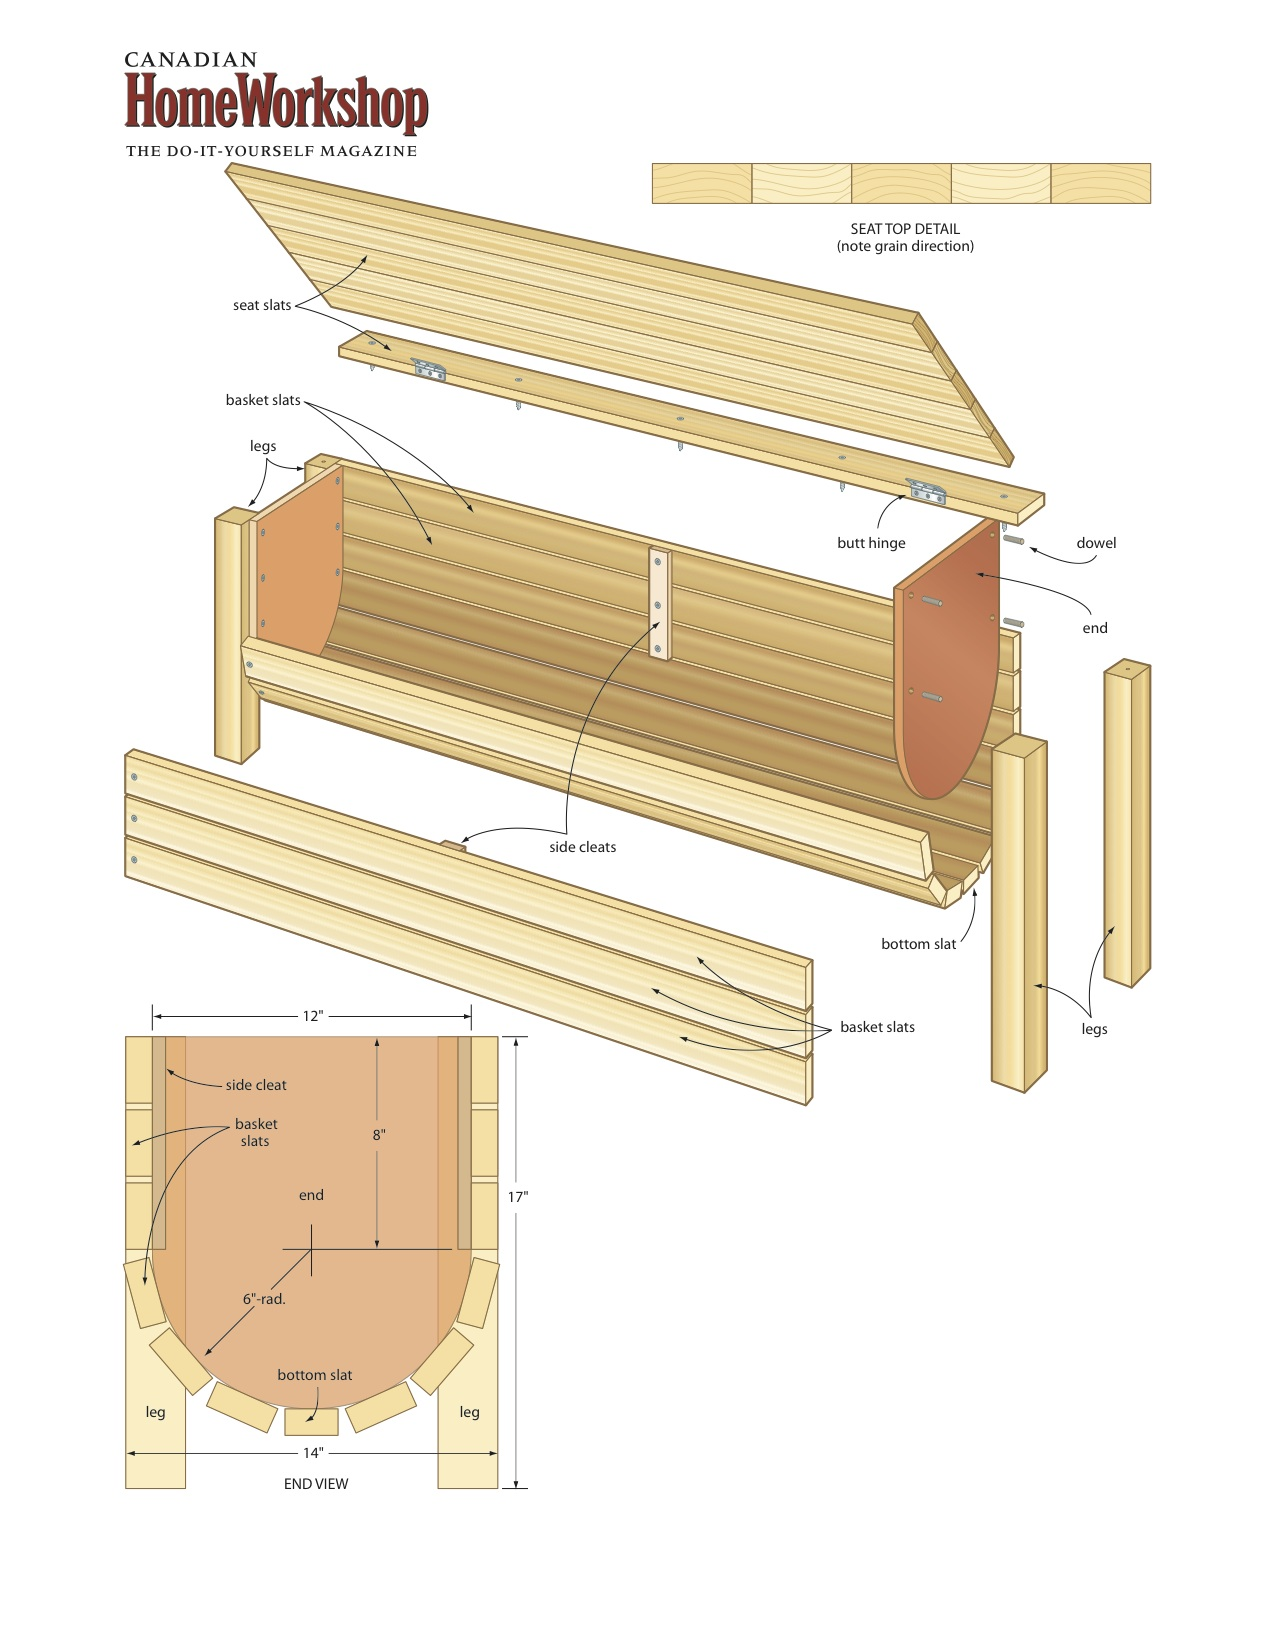 Woodworking plans storage pdf woodworking for Woodworking drawings